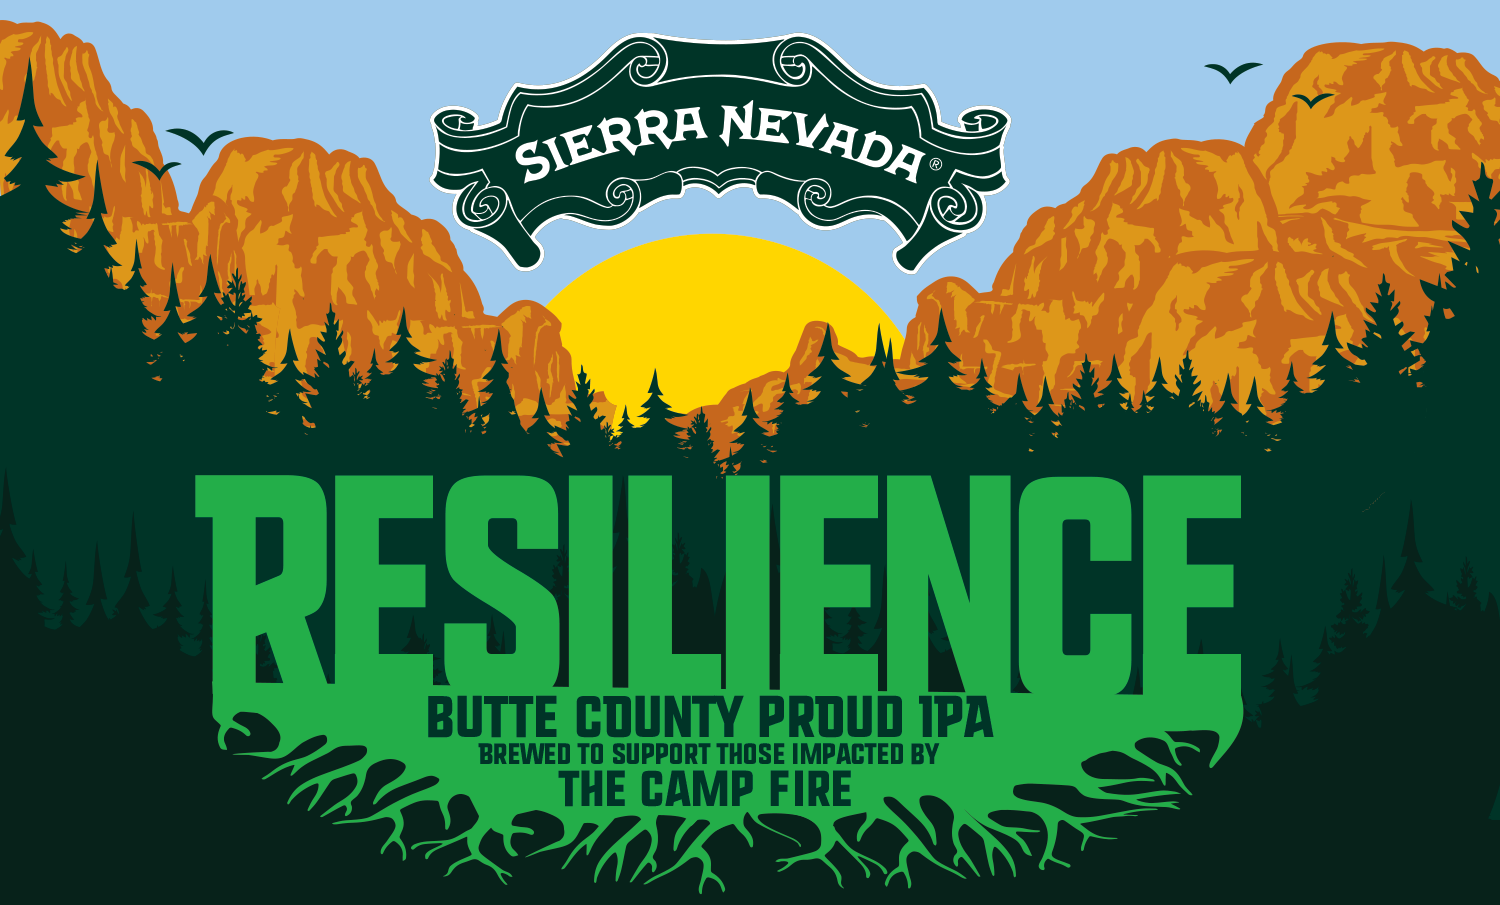 Sierra Nevada Ca: Sierra Nevada To Brew Camp Fire Fundraiser Beer